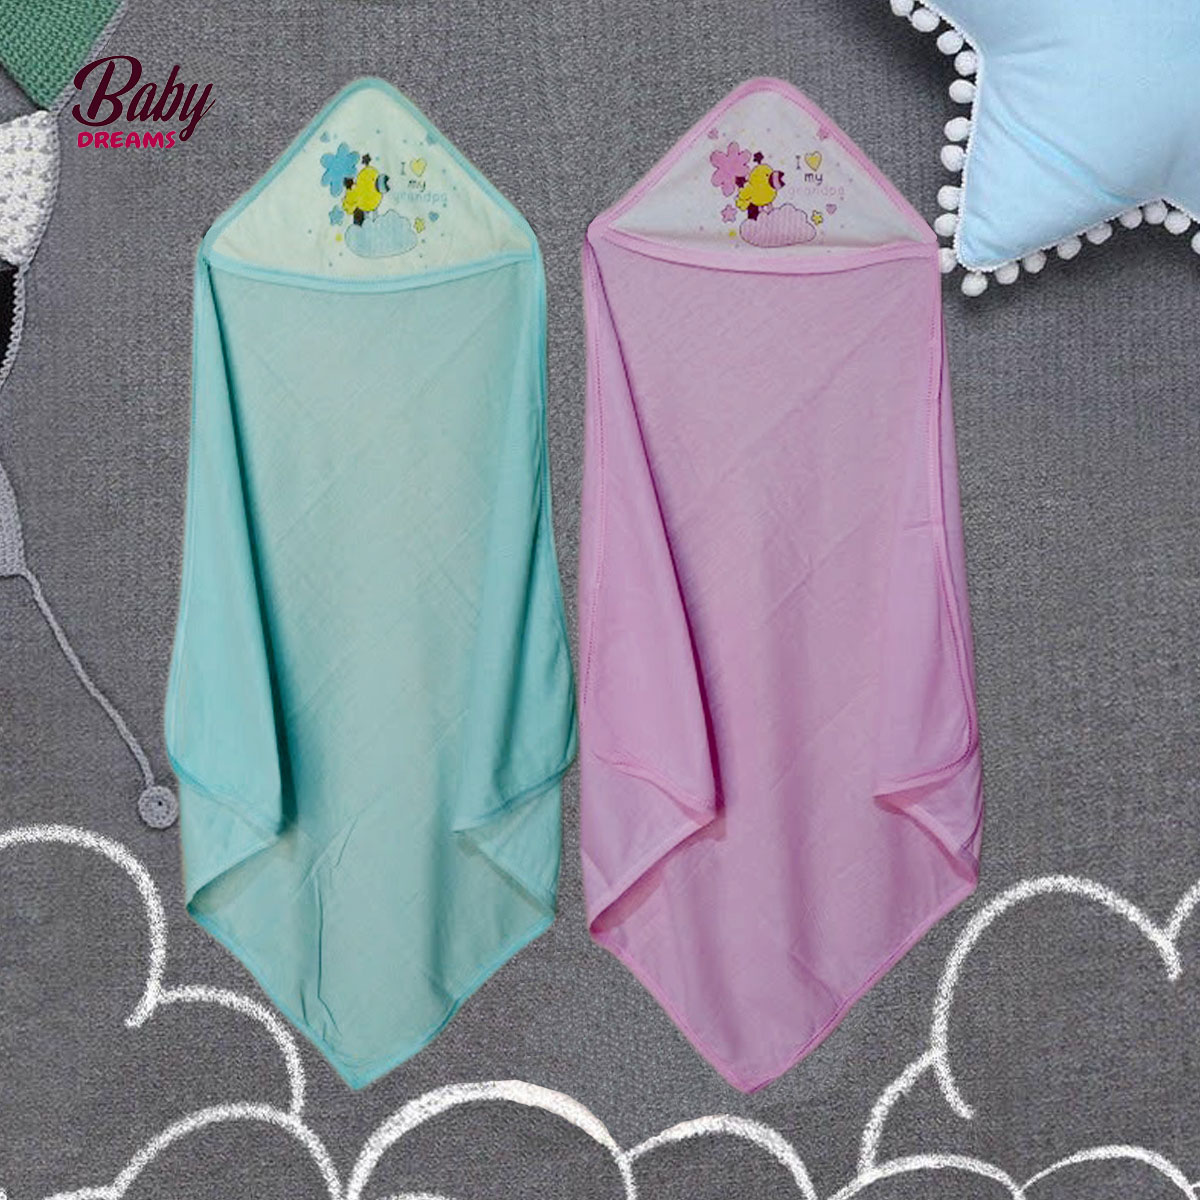 Baby Swaddles Wrapping Sheet With Hoddie (Pack Of 2) BD-F010